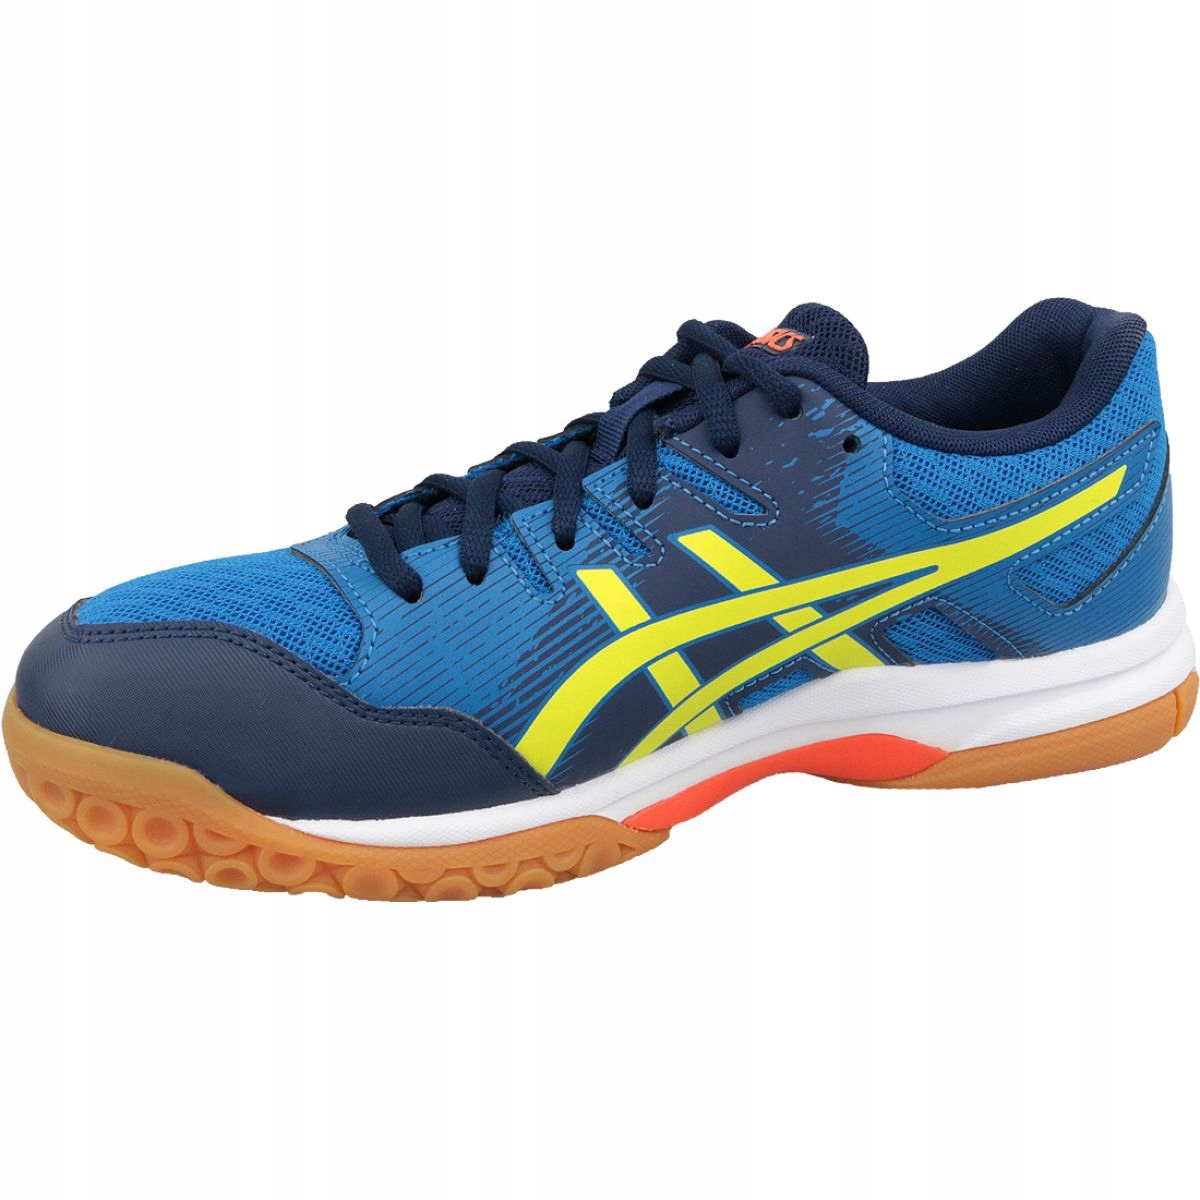 1071A030-400 volleyball shoes blue blue